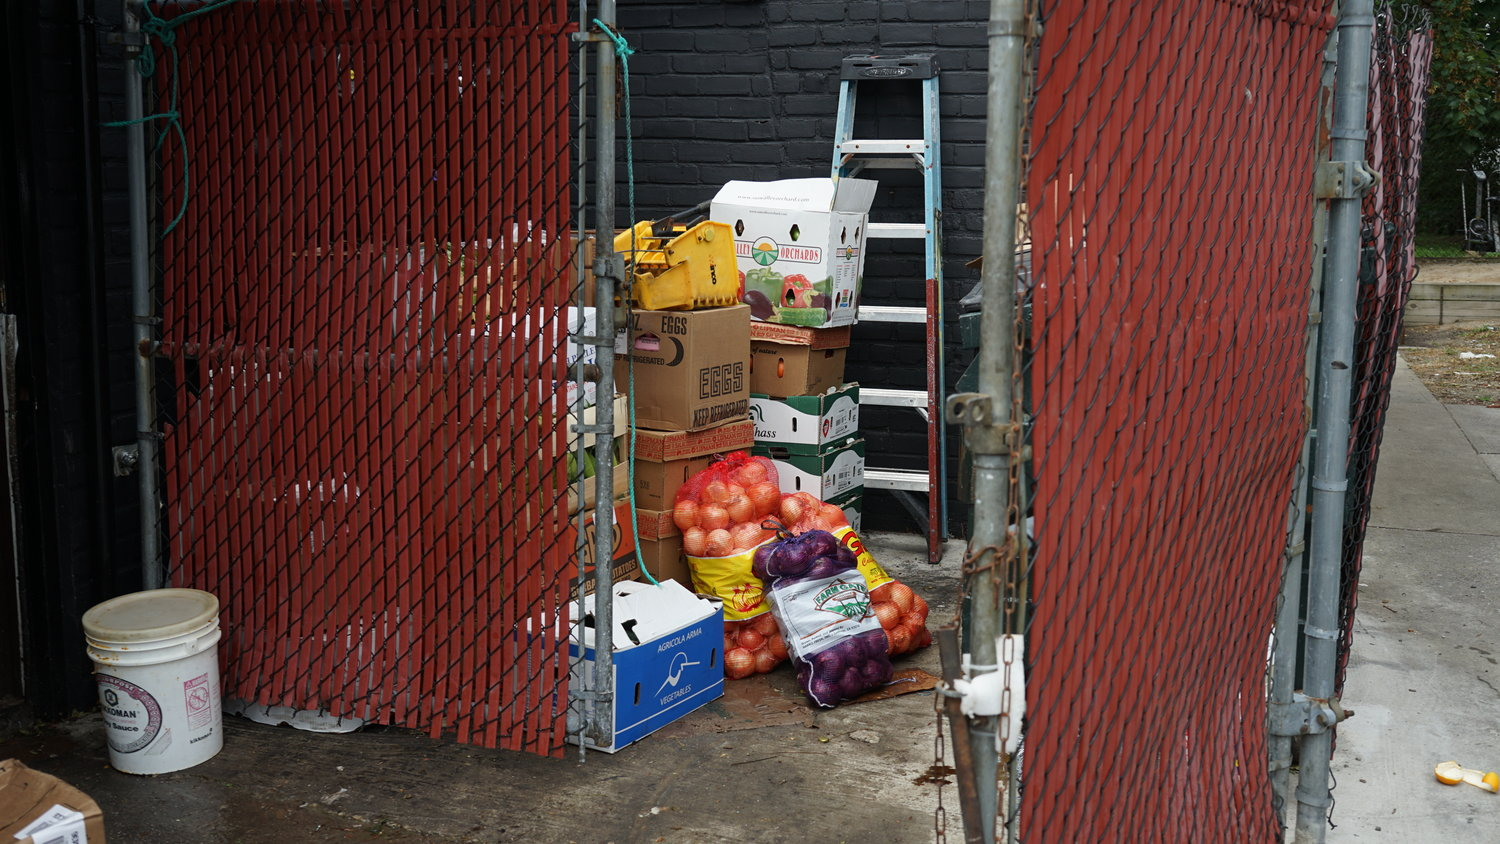 The Chicken Coop was forced to discard $10,000 to $15,000 in food because there was no refrigeration.